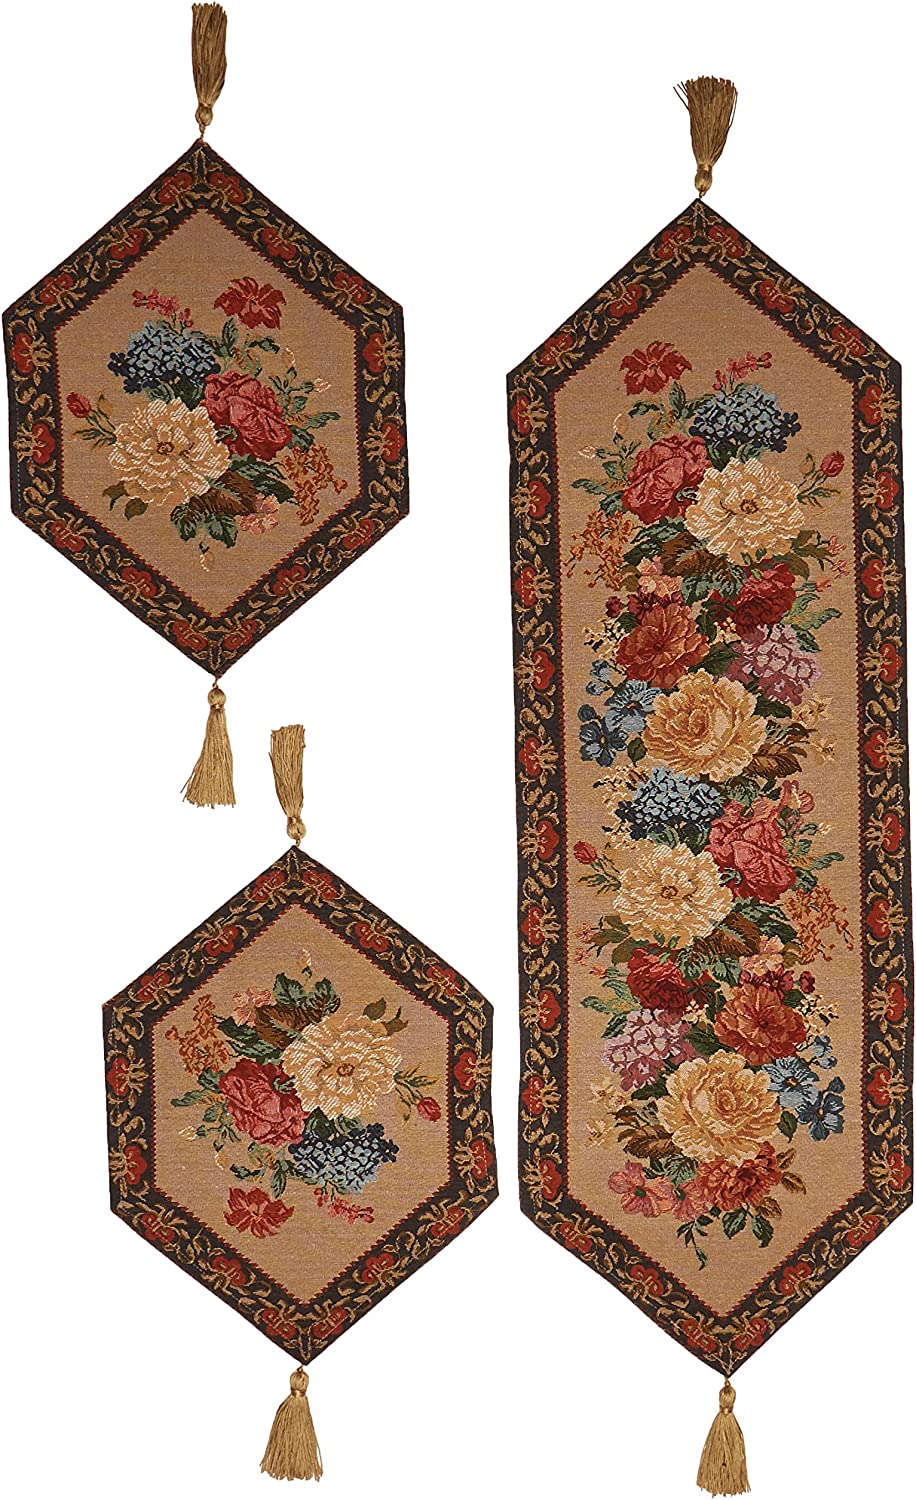 DaDa Bedding TR-3089 3-Piece Breath of Spring Woven Table Runner Floral